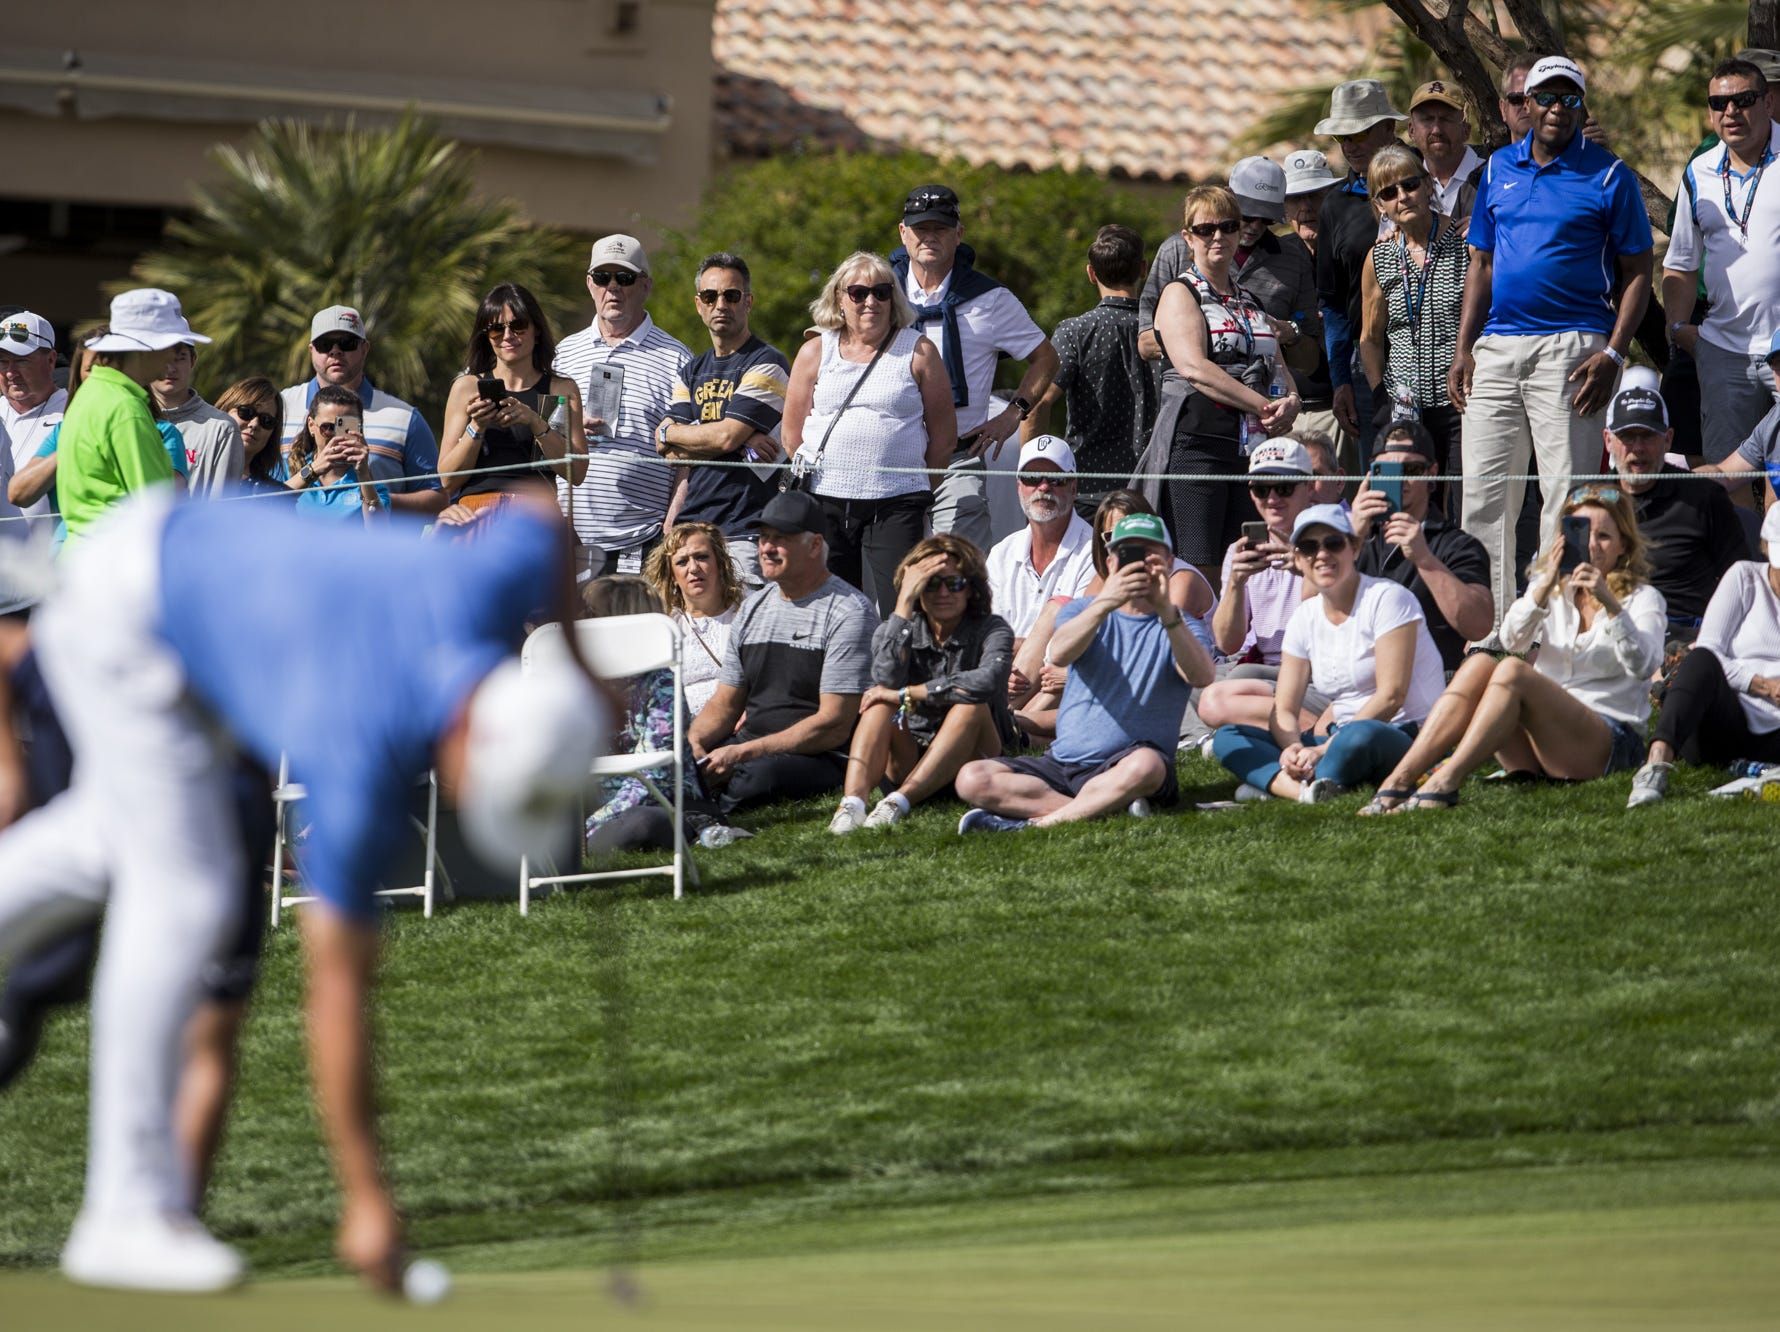 Fans watch as Gary Woodland prepares to putt at the 1st hole during the first round of the Waste Management Phoenix Open.